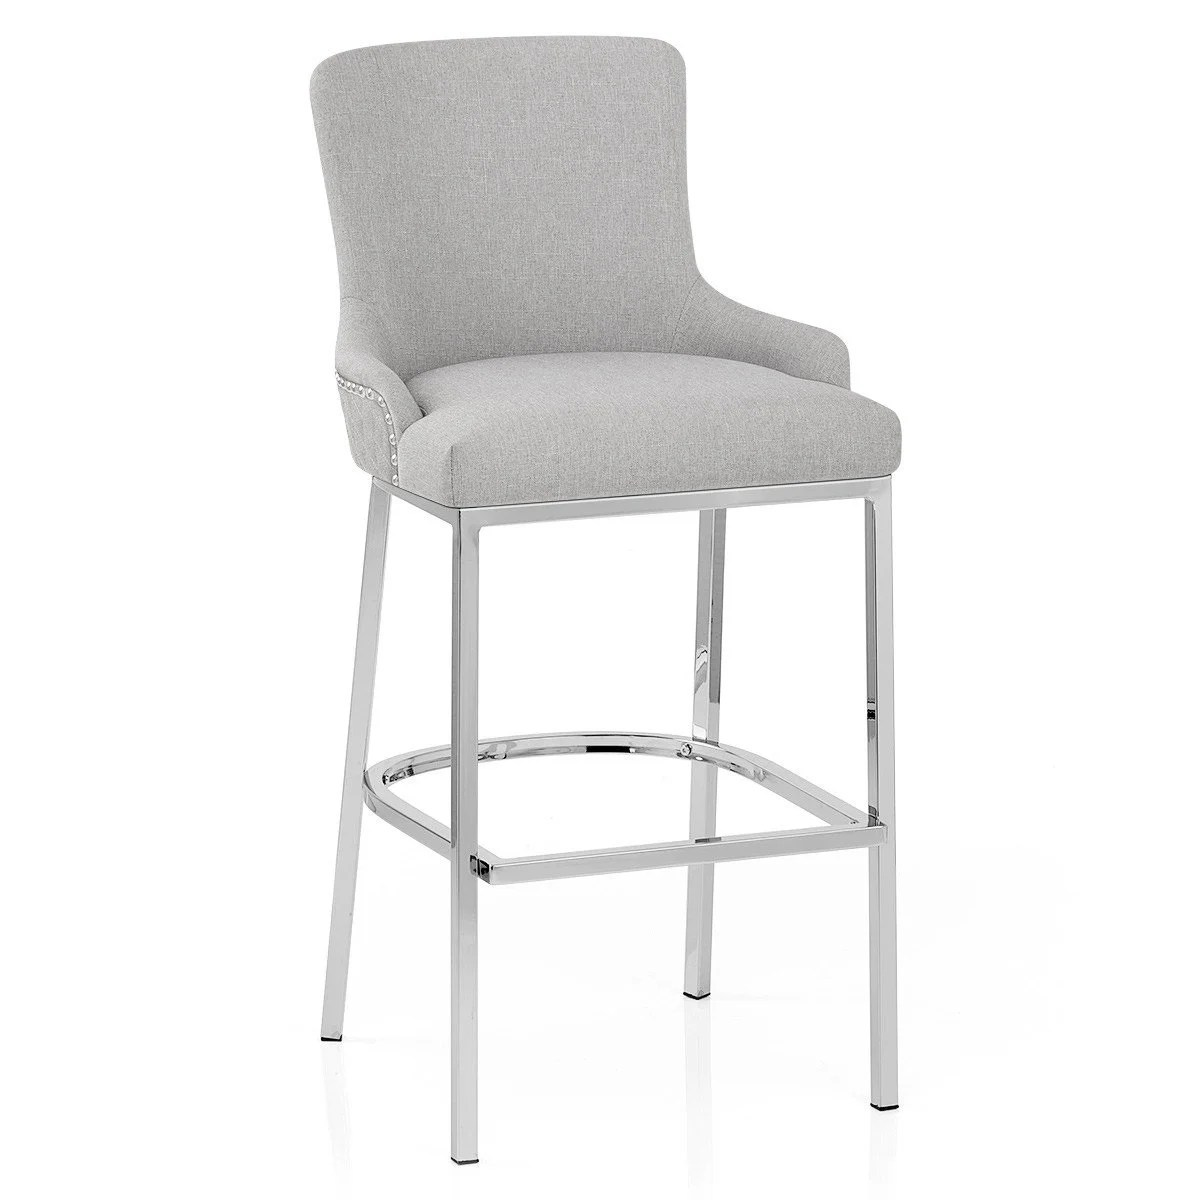 Tabouret De Bar Gris Clair Tabouret De Bar Design Textile Gris Clair Blush